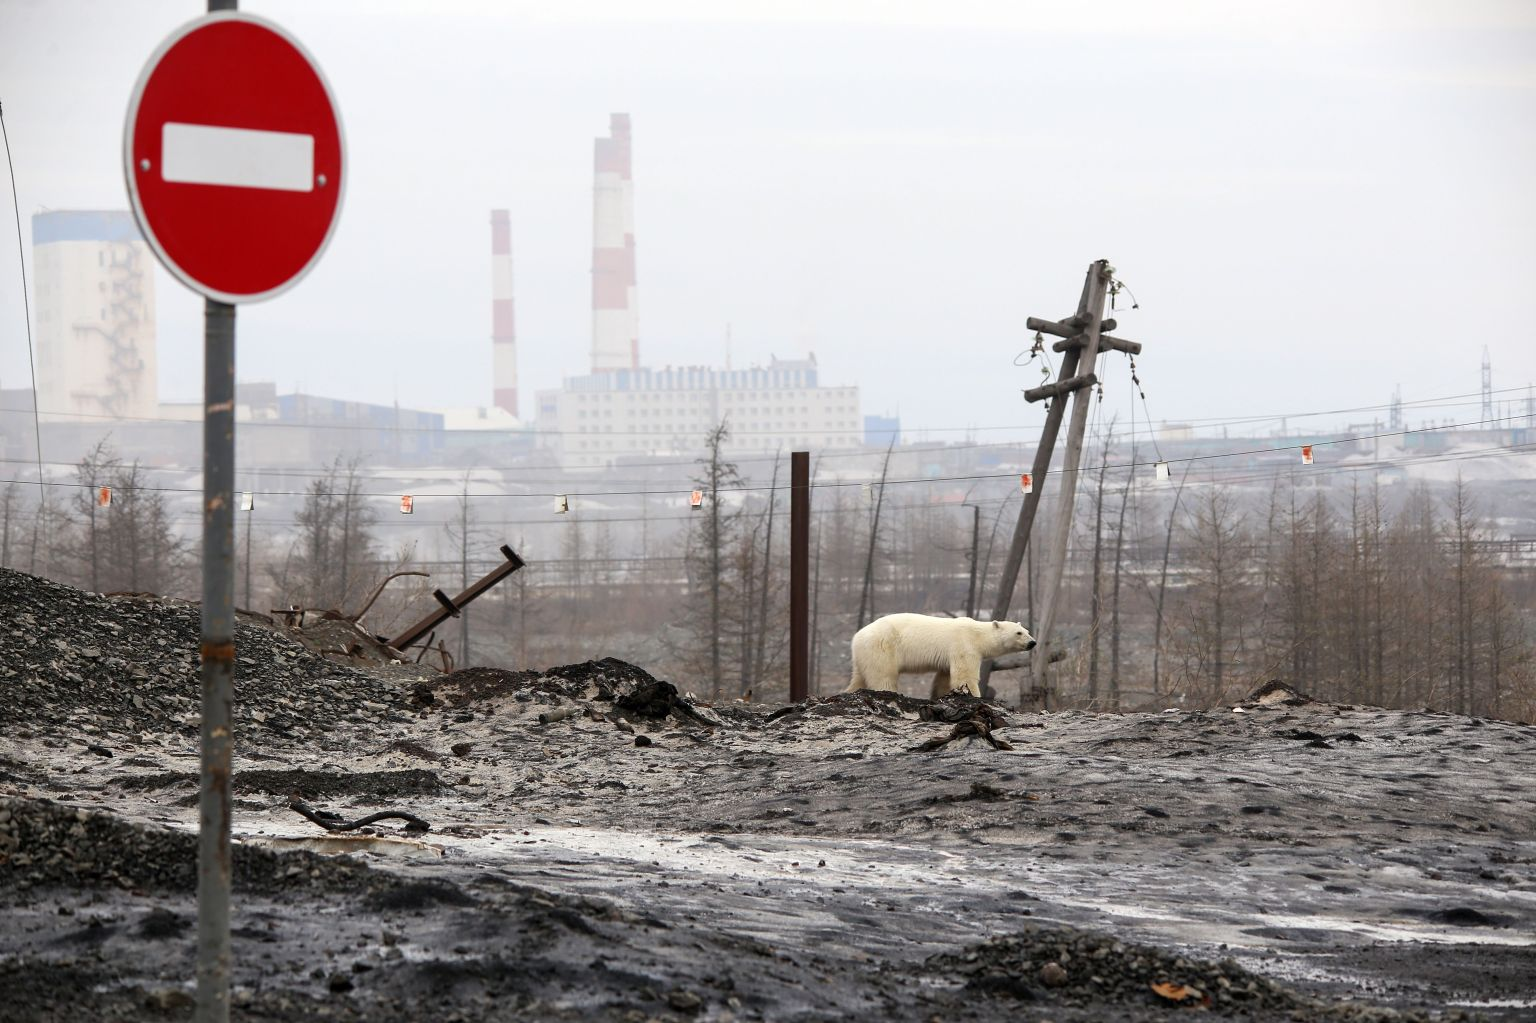 A polar bear wanders the outskirts of the Russian industrial city of Norilsk, hundreds of miles from its natural habitat, on June 17. IRINA YARINSKAYA/AFP/Getty Images